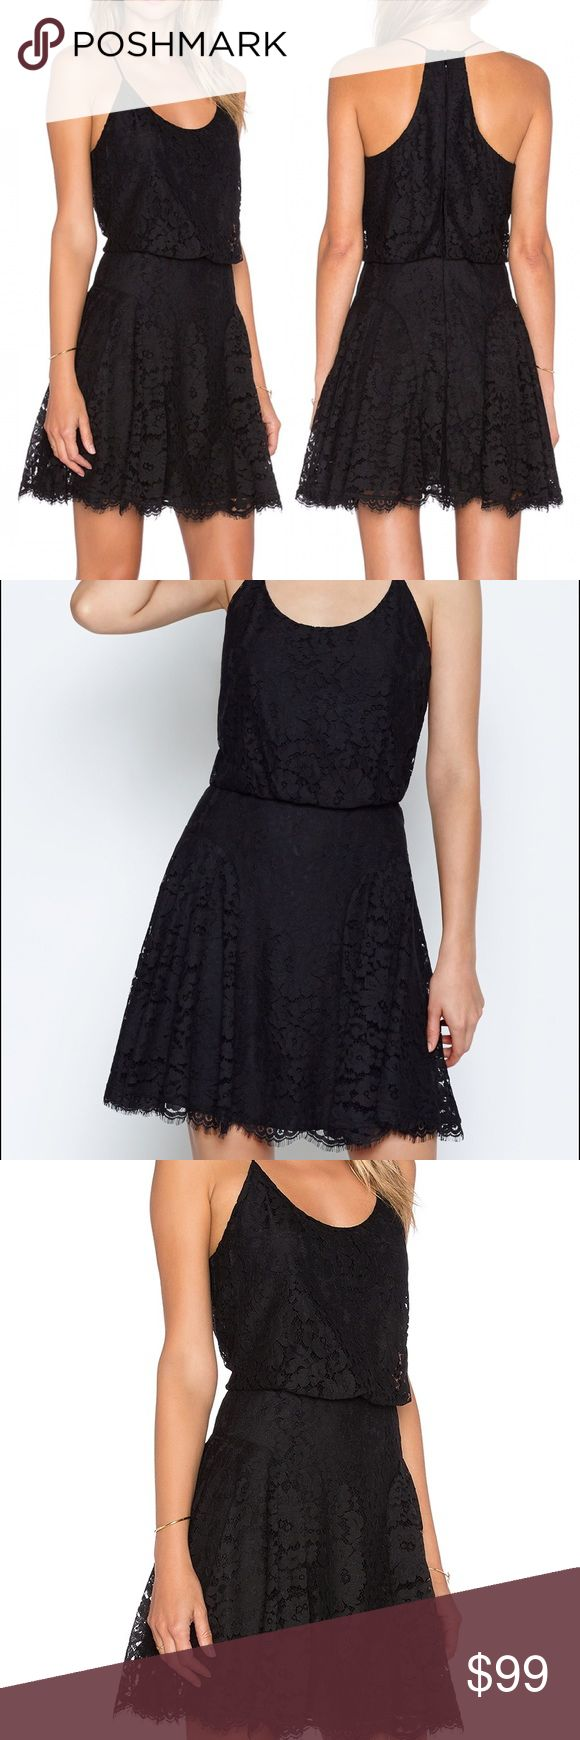 JOIE NANON B Dress Caviar Black This fit-and-flare lace dress has a blouson top with thin straps and a coquettish racerback. Inverted pleats on the skirt add extra movement, making this a perfect LBD for party season. Back zip closure. Scooped neck. Sleeveless. Lined. 58% nylon, 42% cotton. Joie Dresses